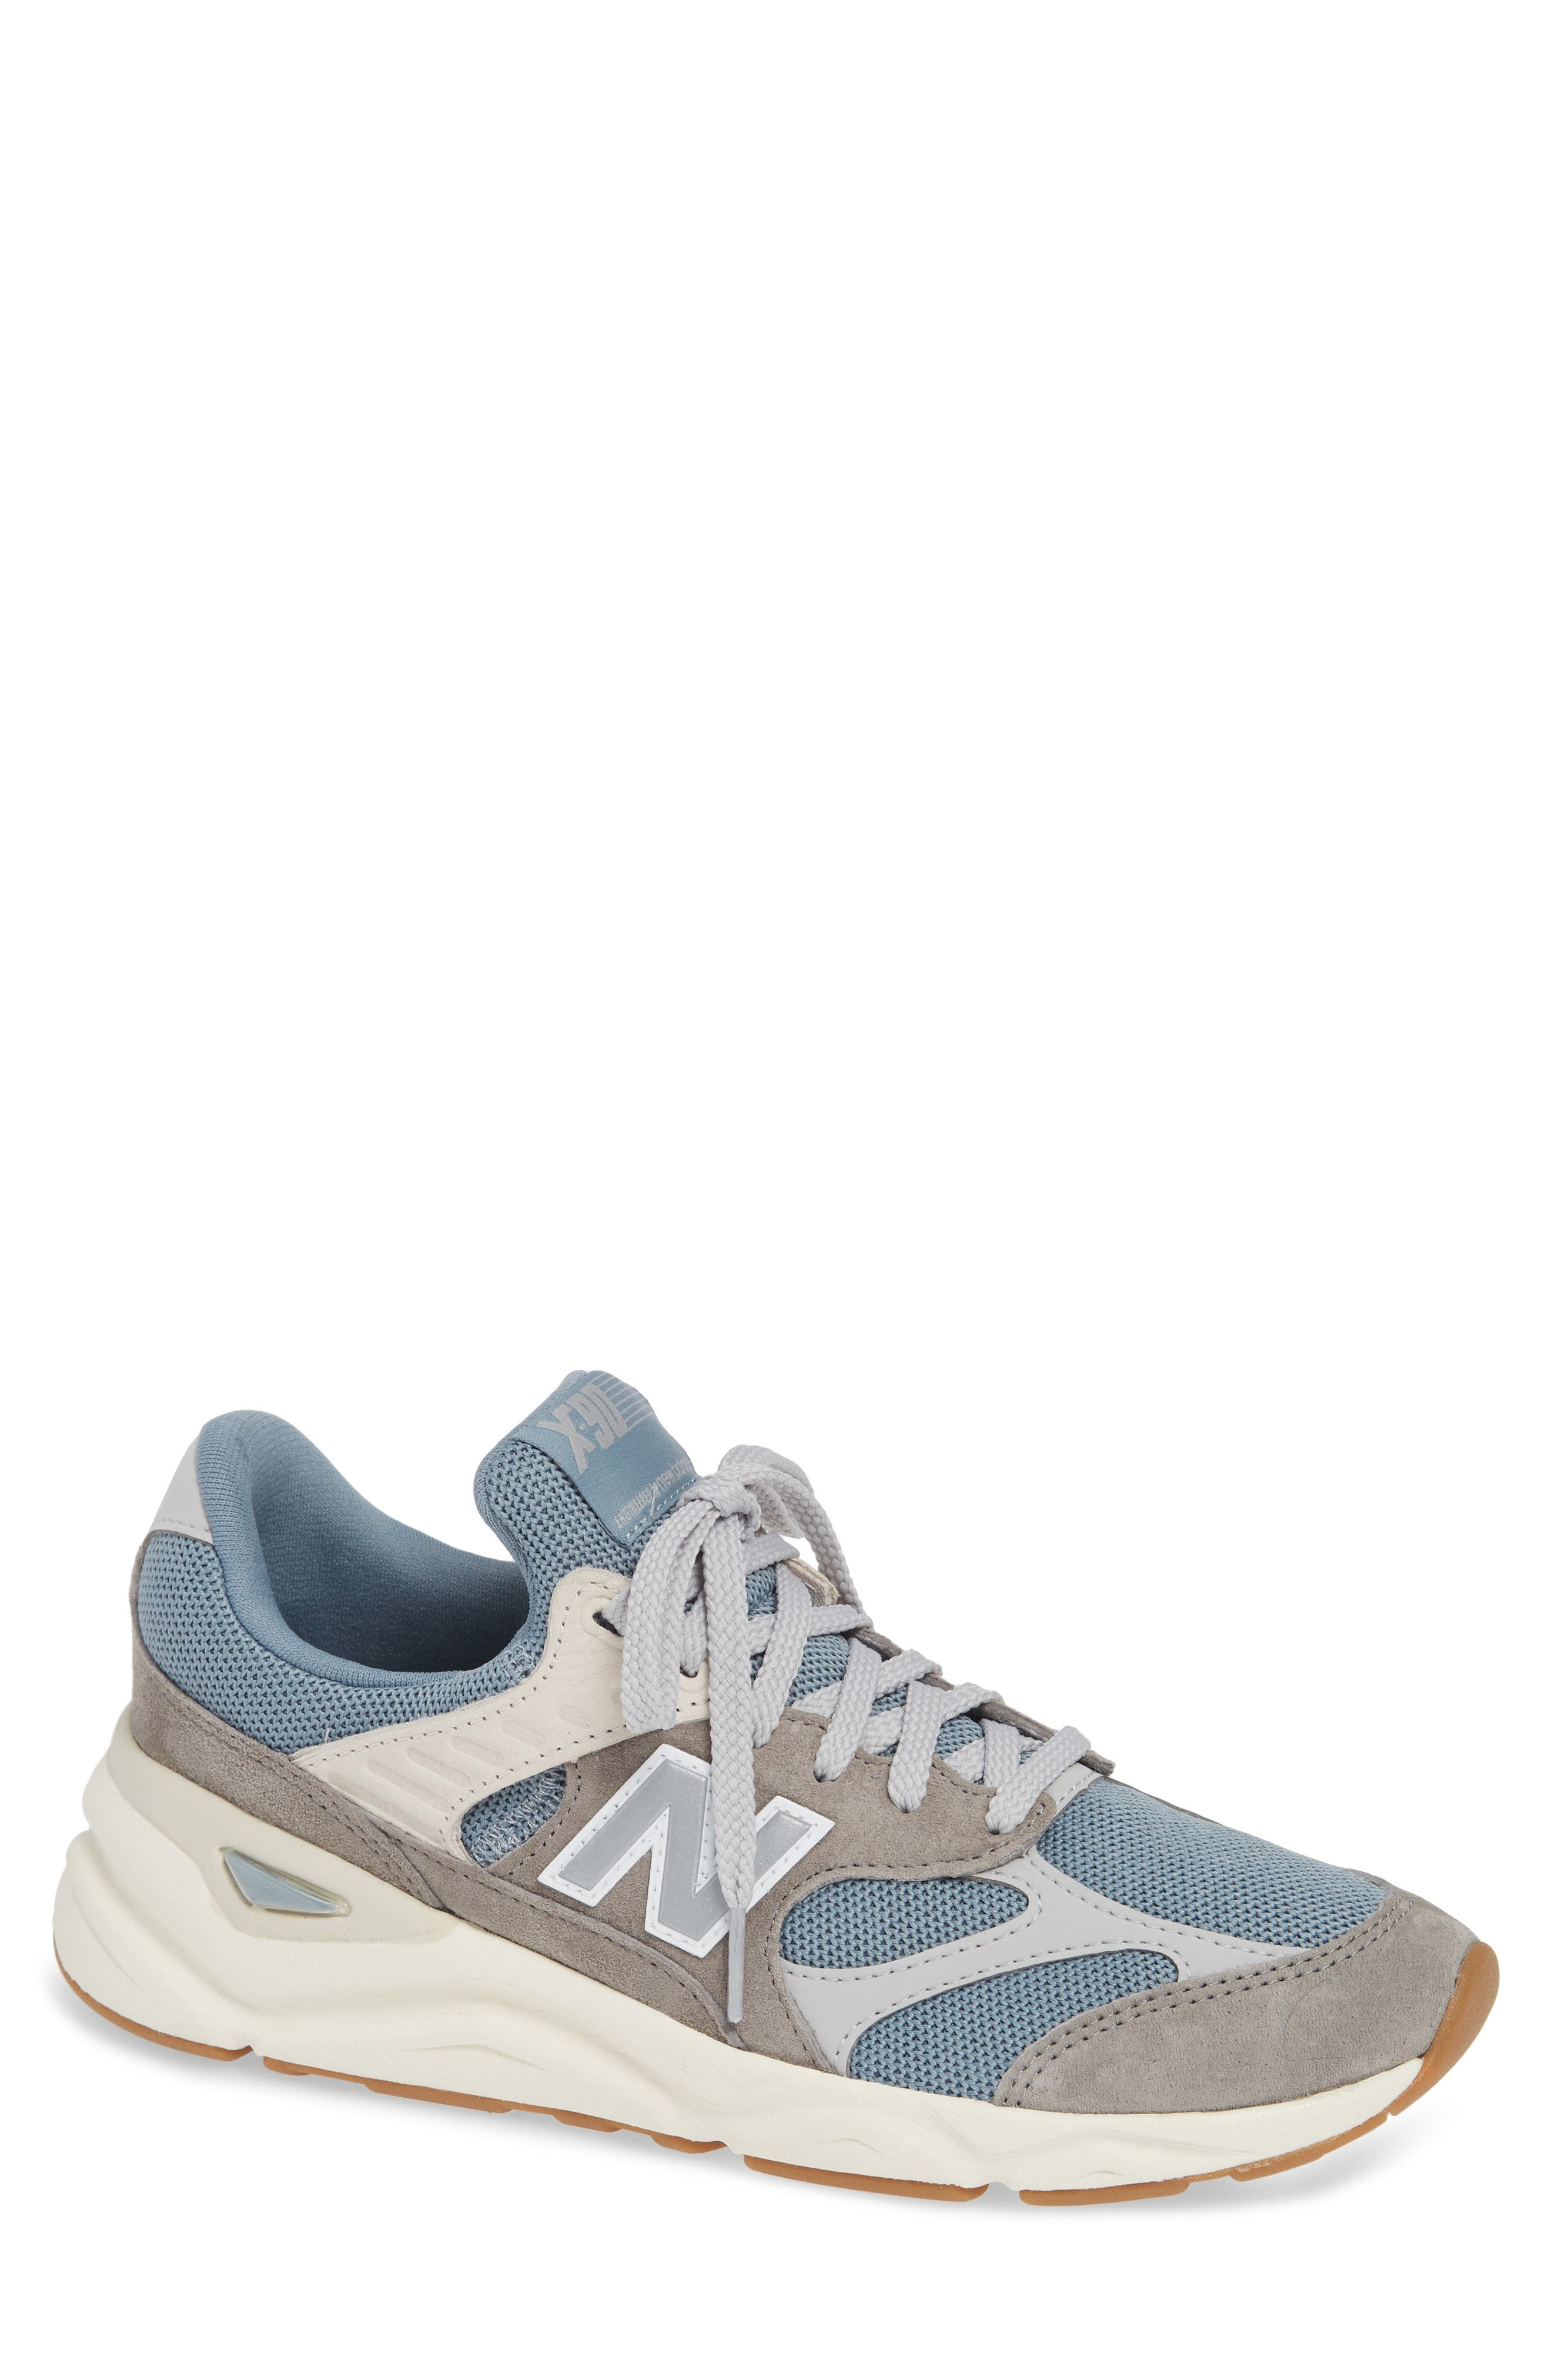 X-90 Sneaker,                             Main thumbnail 1, color,                             CYCLONE SUEDE/ TEXTILE